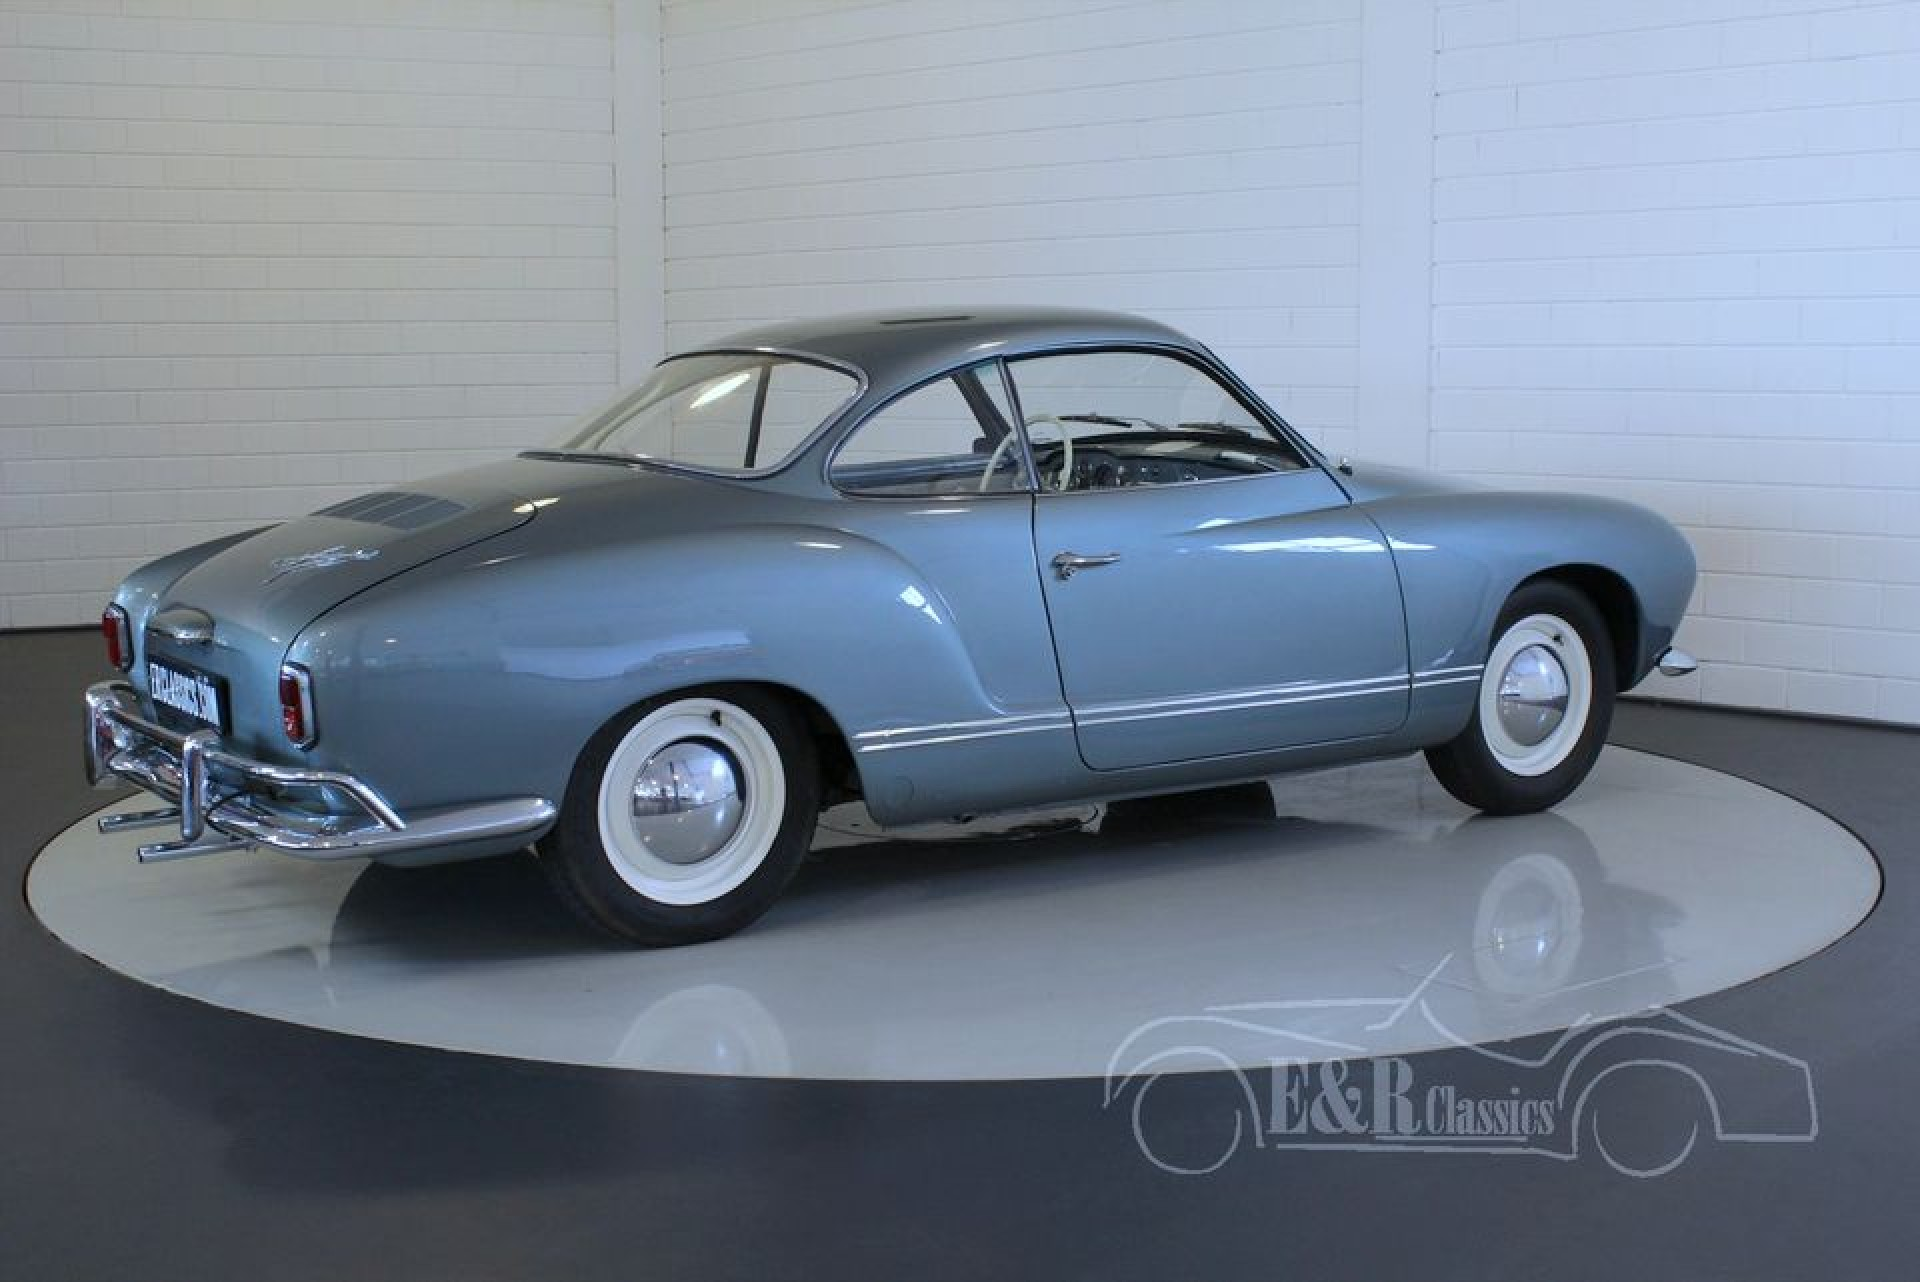 volkswagen karmann ghia lowlight 1958 in sehr gutem zustand. Black Bedroom Furniture Sets. Home Design Ideas